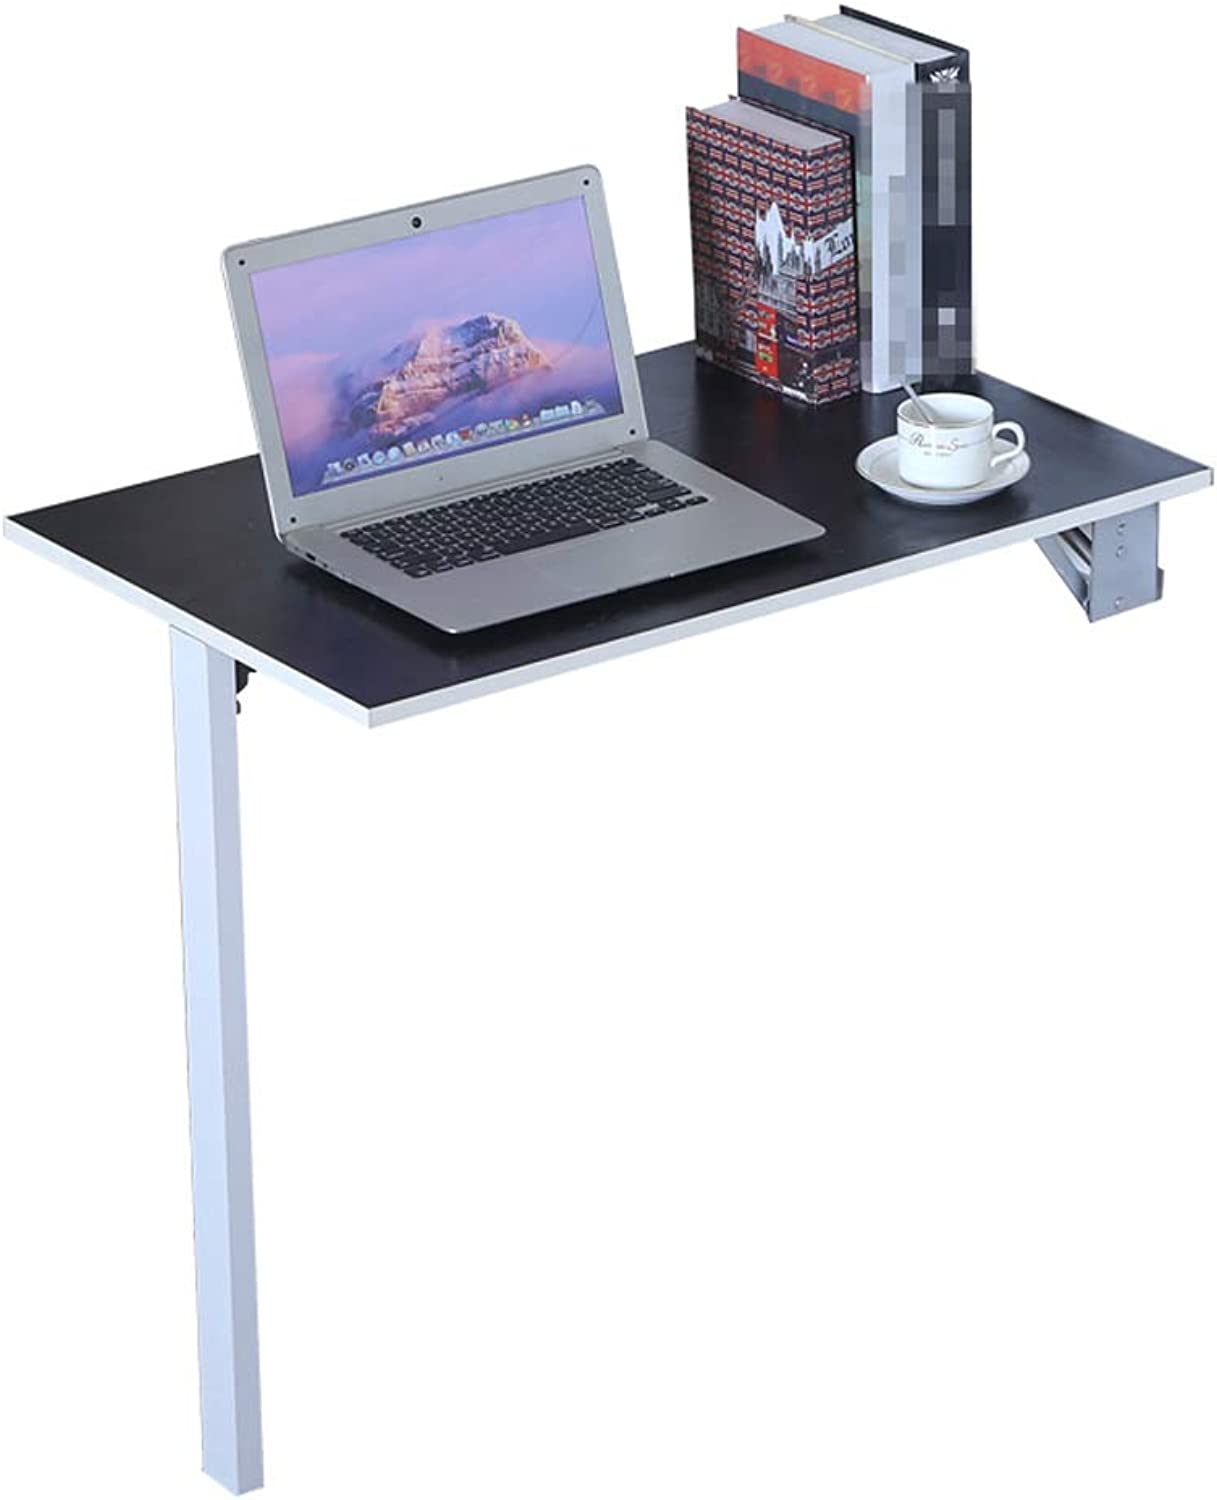 GY Fold Drop Leaf Congreen Wall Table Wooden Floating Workbench, One Leg Multifunction Laptop Study Desk Against The Wall Table, Black, 3 Sizes (color   Black, Size   80  30cm)